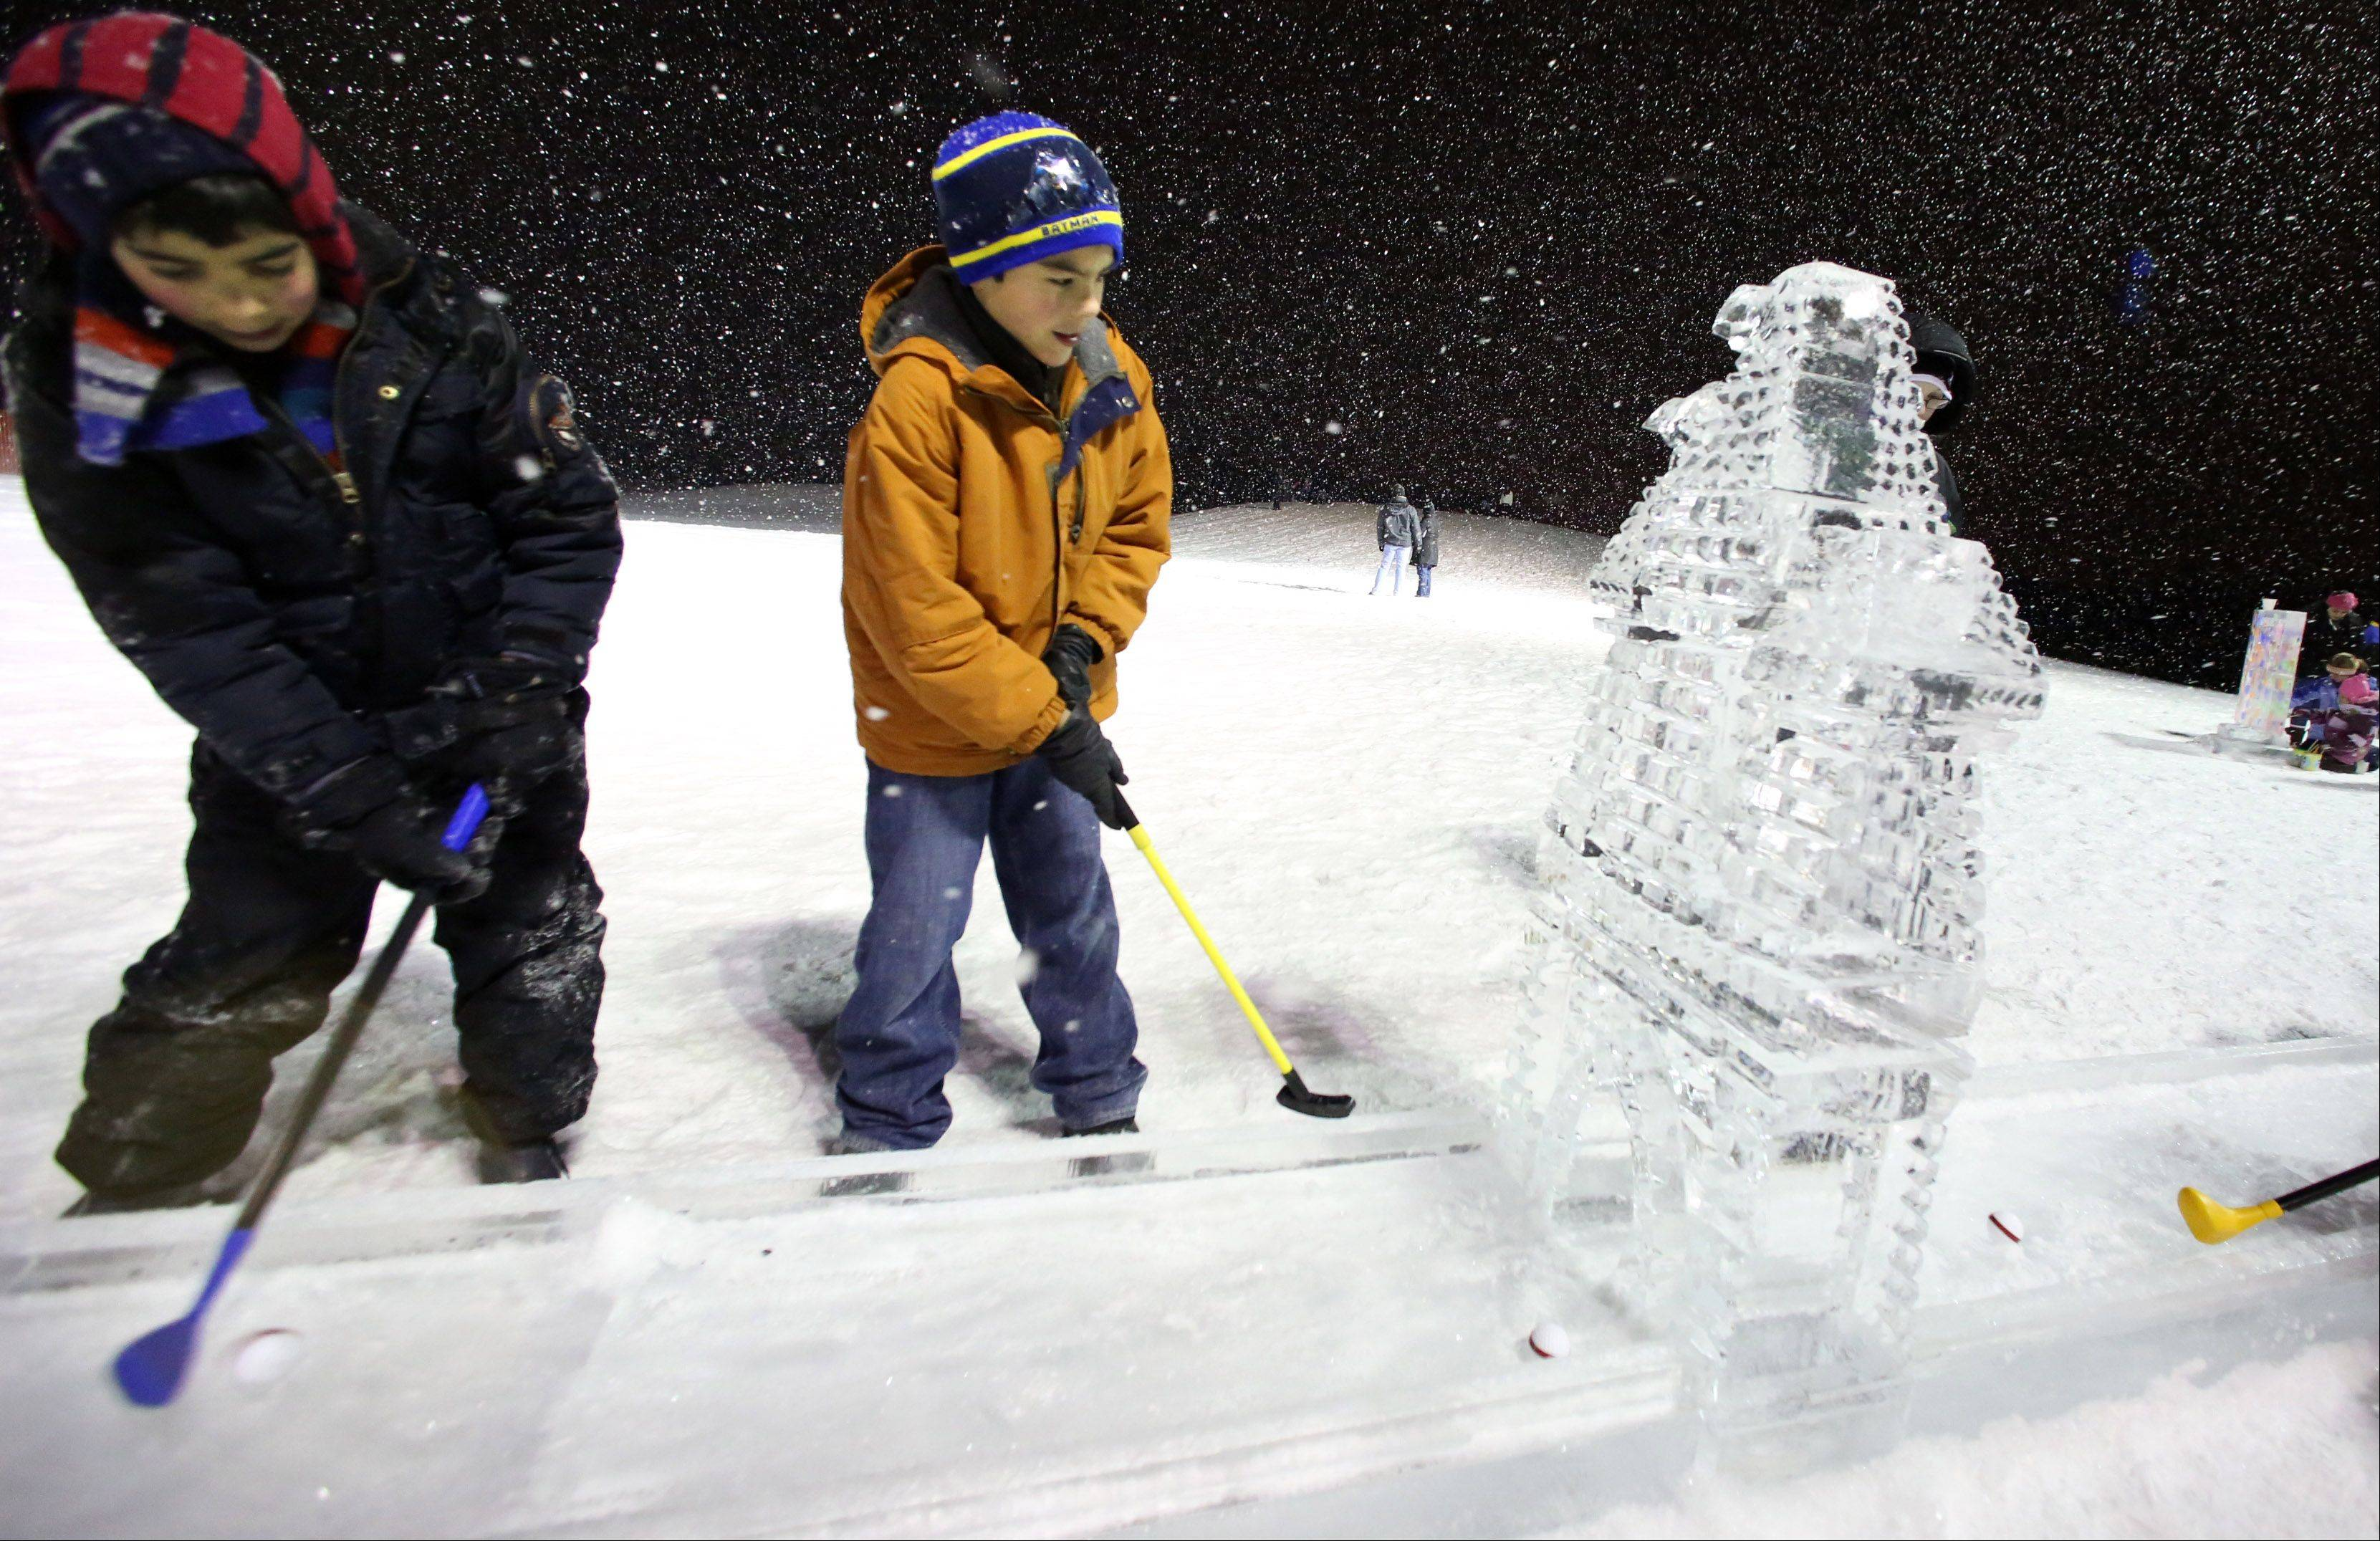 Brothers Luis, 10, left, and Alan Contreras, 9, play golf on a miniature ice golf course at Gurnee Park District't annual Frosty Fest on Friday night at Bittersweet Golf Course in Gurnee.